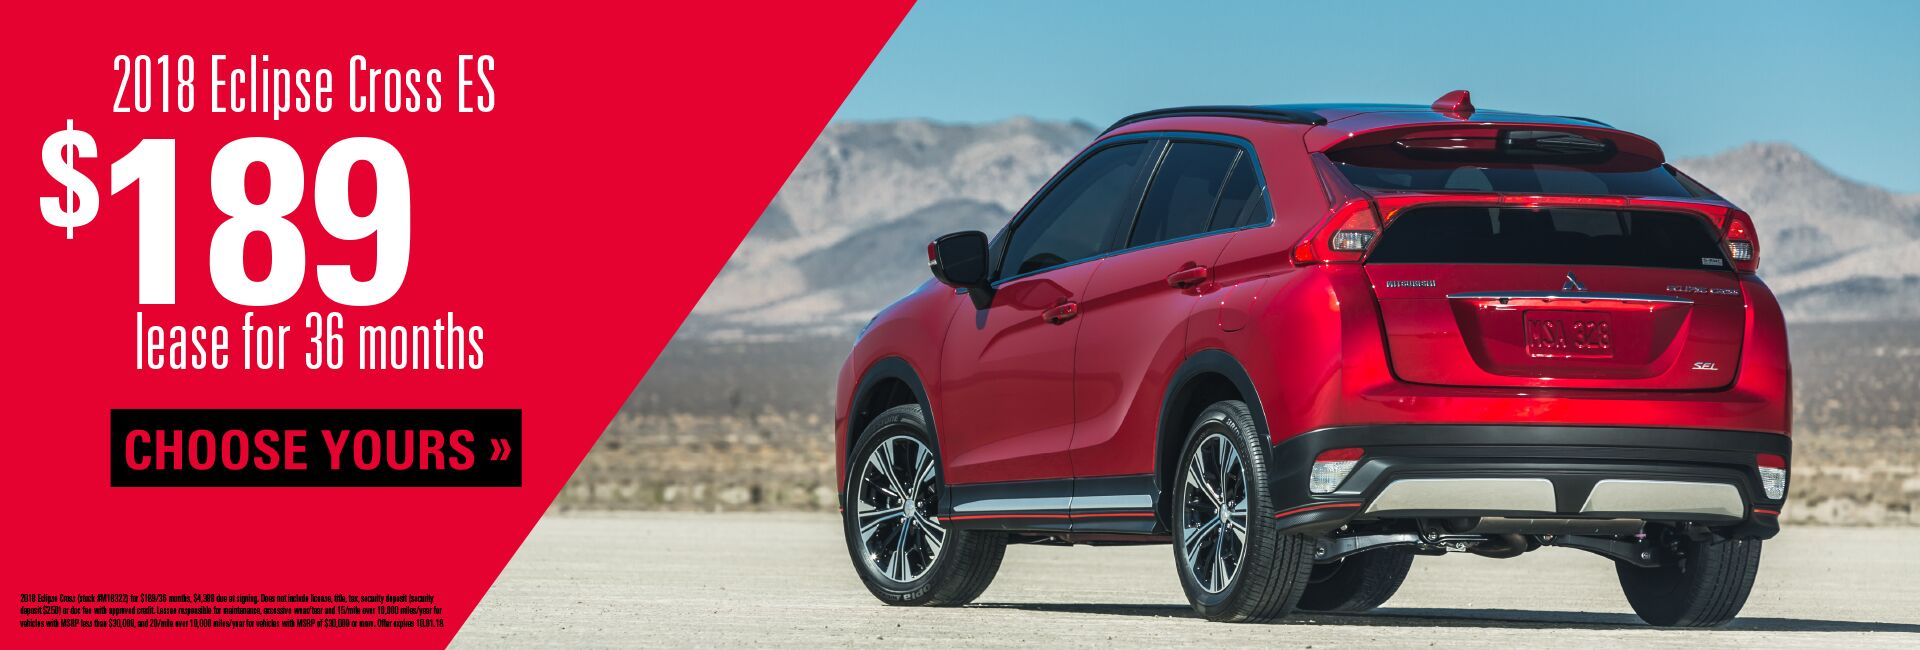 Eclipse Cross Lease